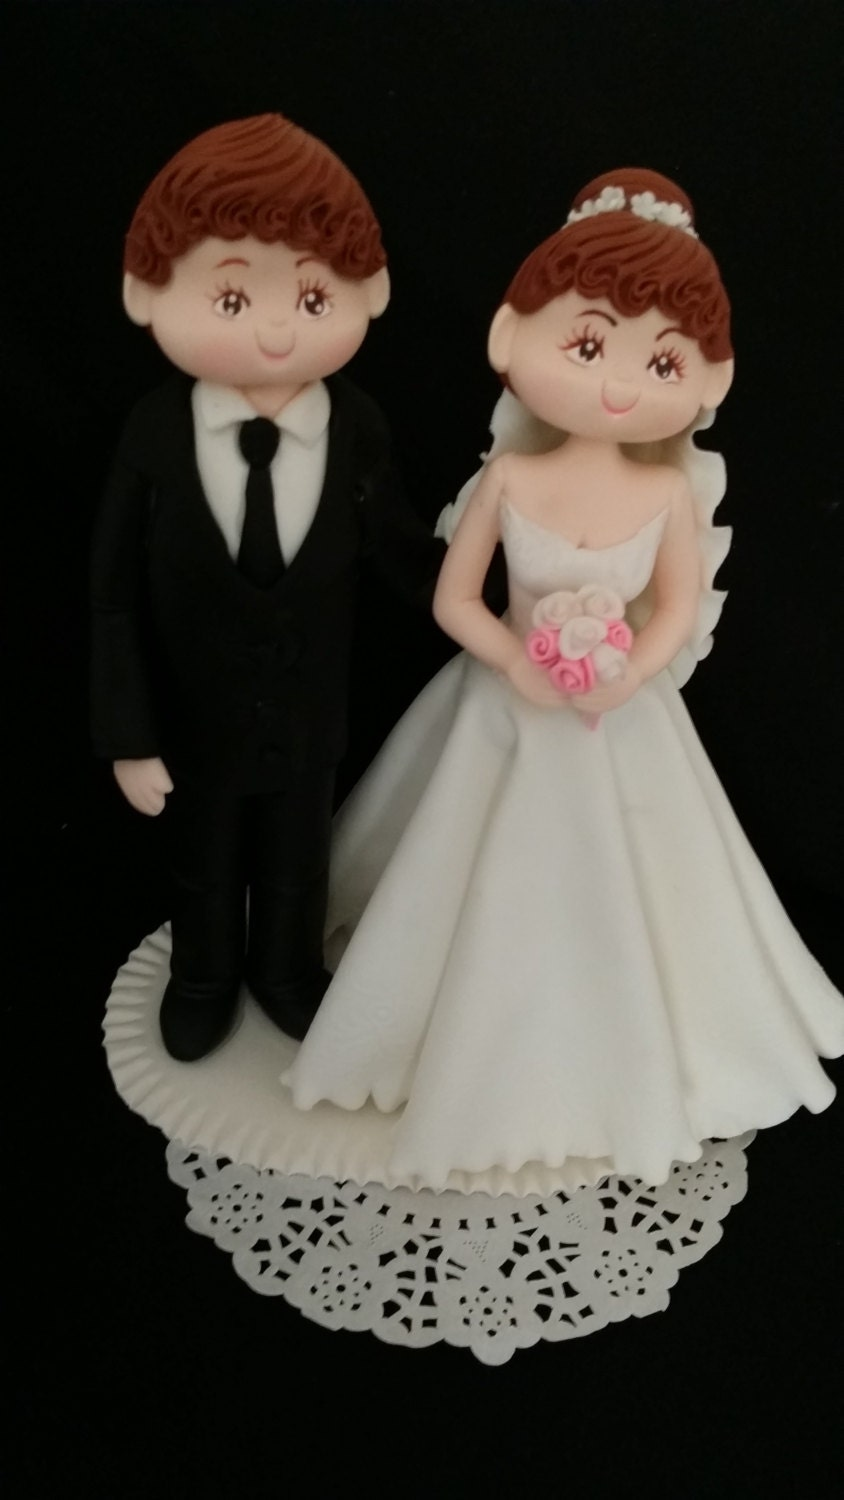 couple wedding cake wedding cake topper amp groom cake topper 13016